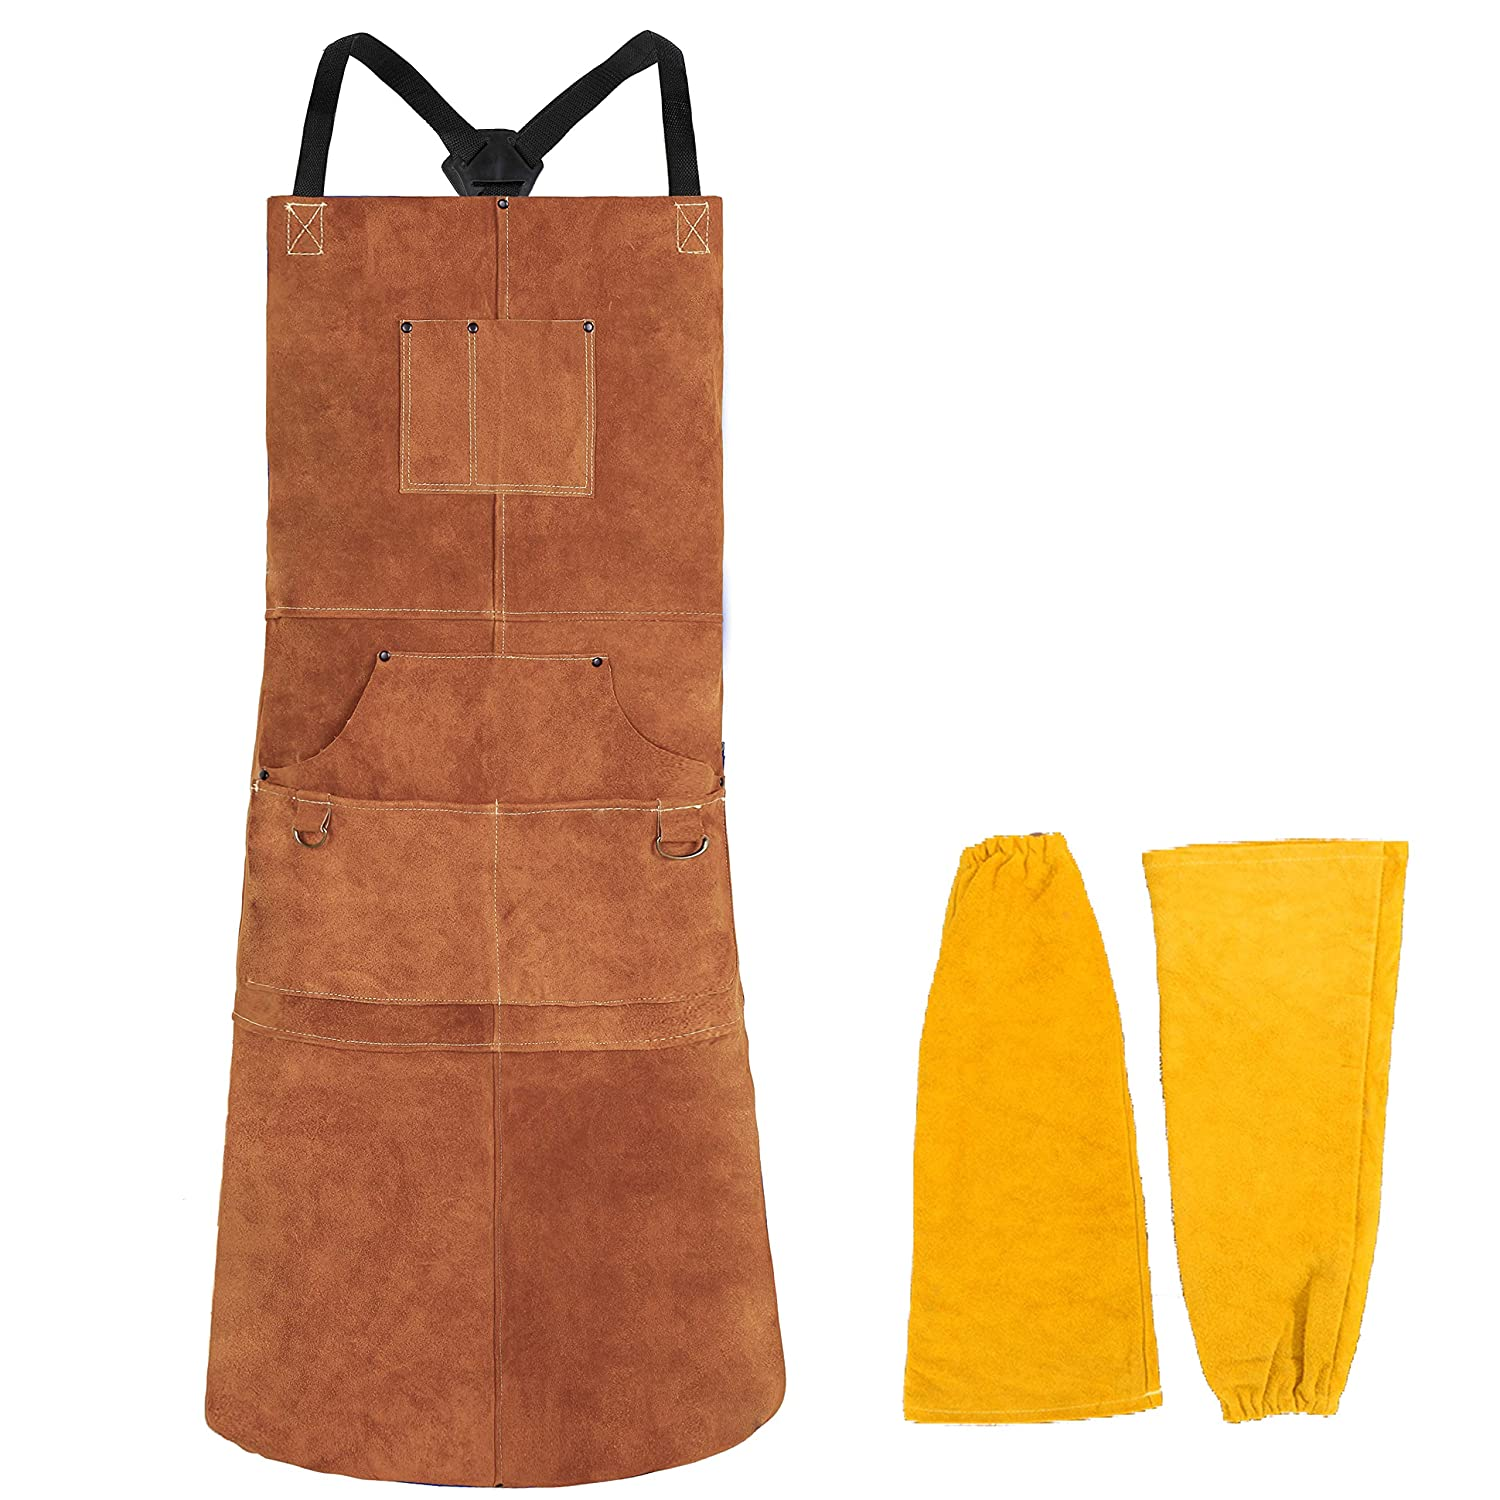 Leather Welding Apron 6 Pockets with Sleeve Adjustable M to XXXL for Men /& Women 42 Extra Large /& Cross Back Long Strap Heat /& Flame-Resistant Heavy Duty Work Aprons